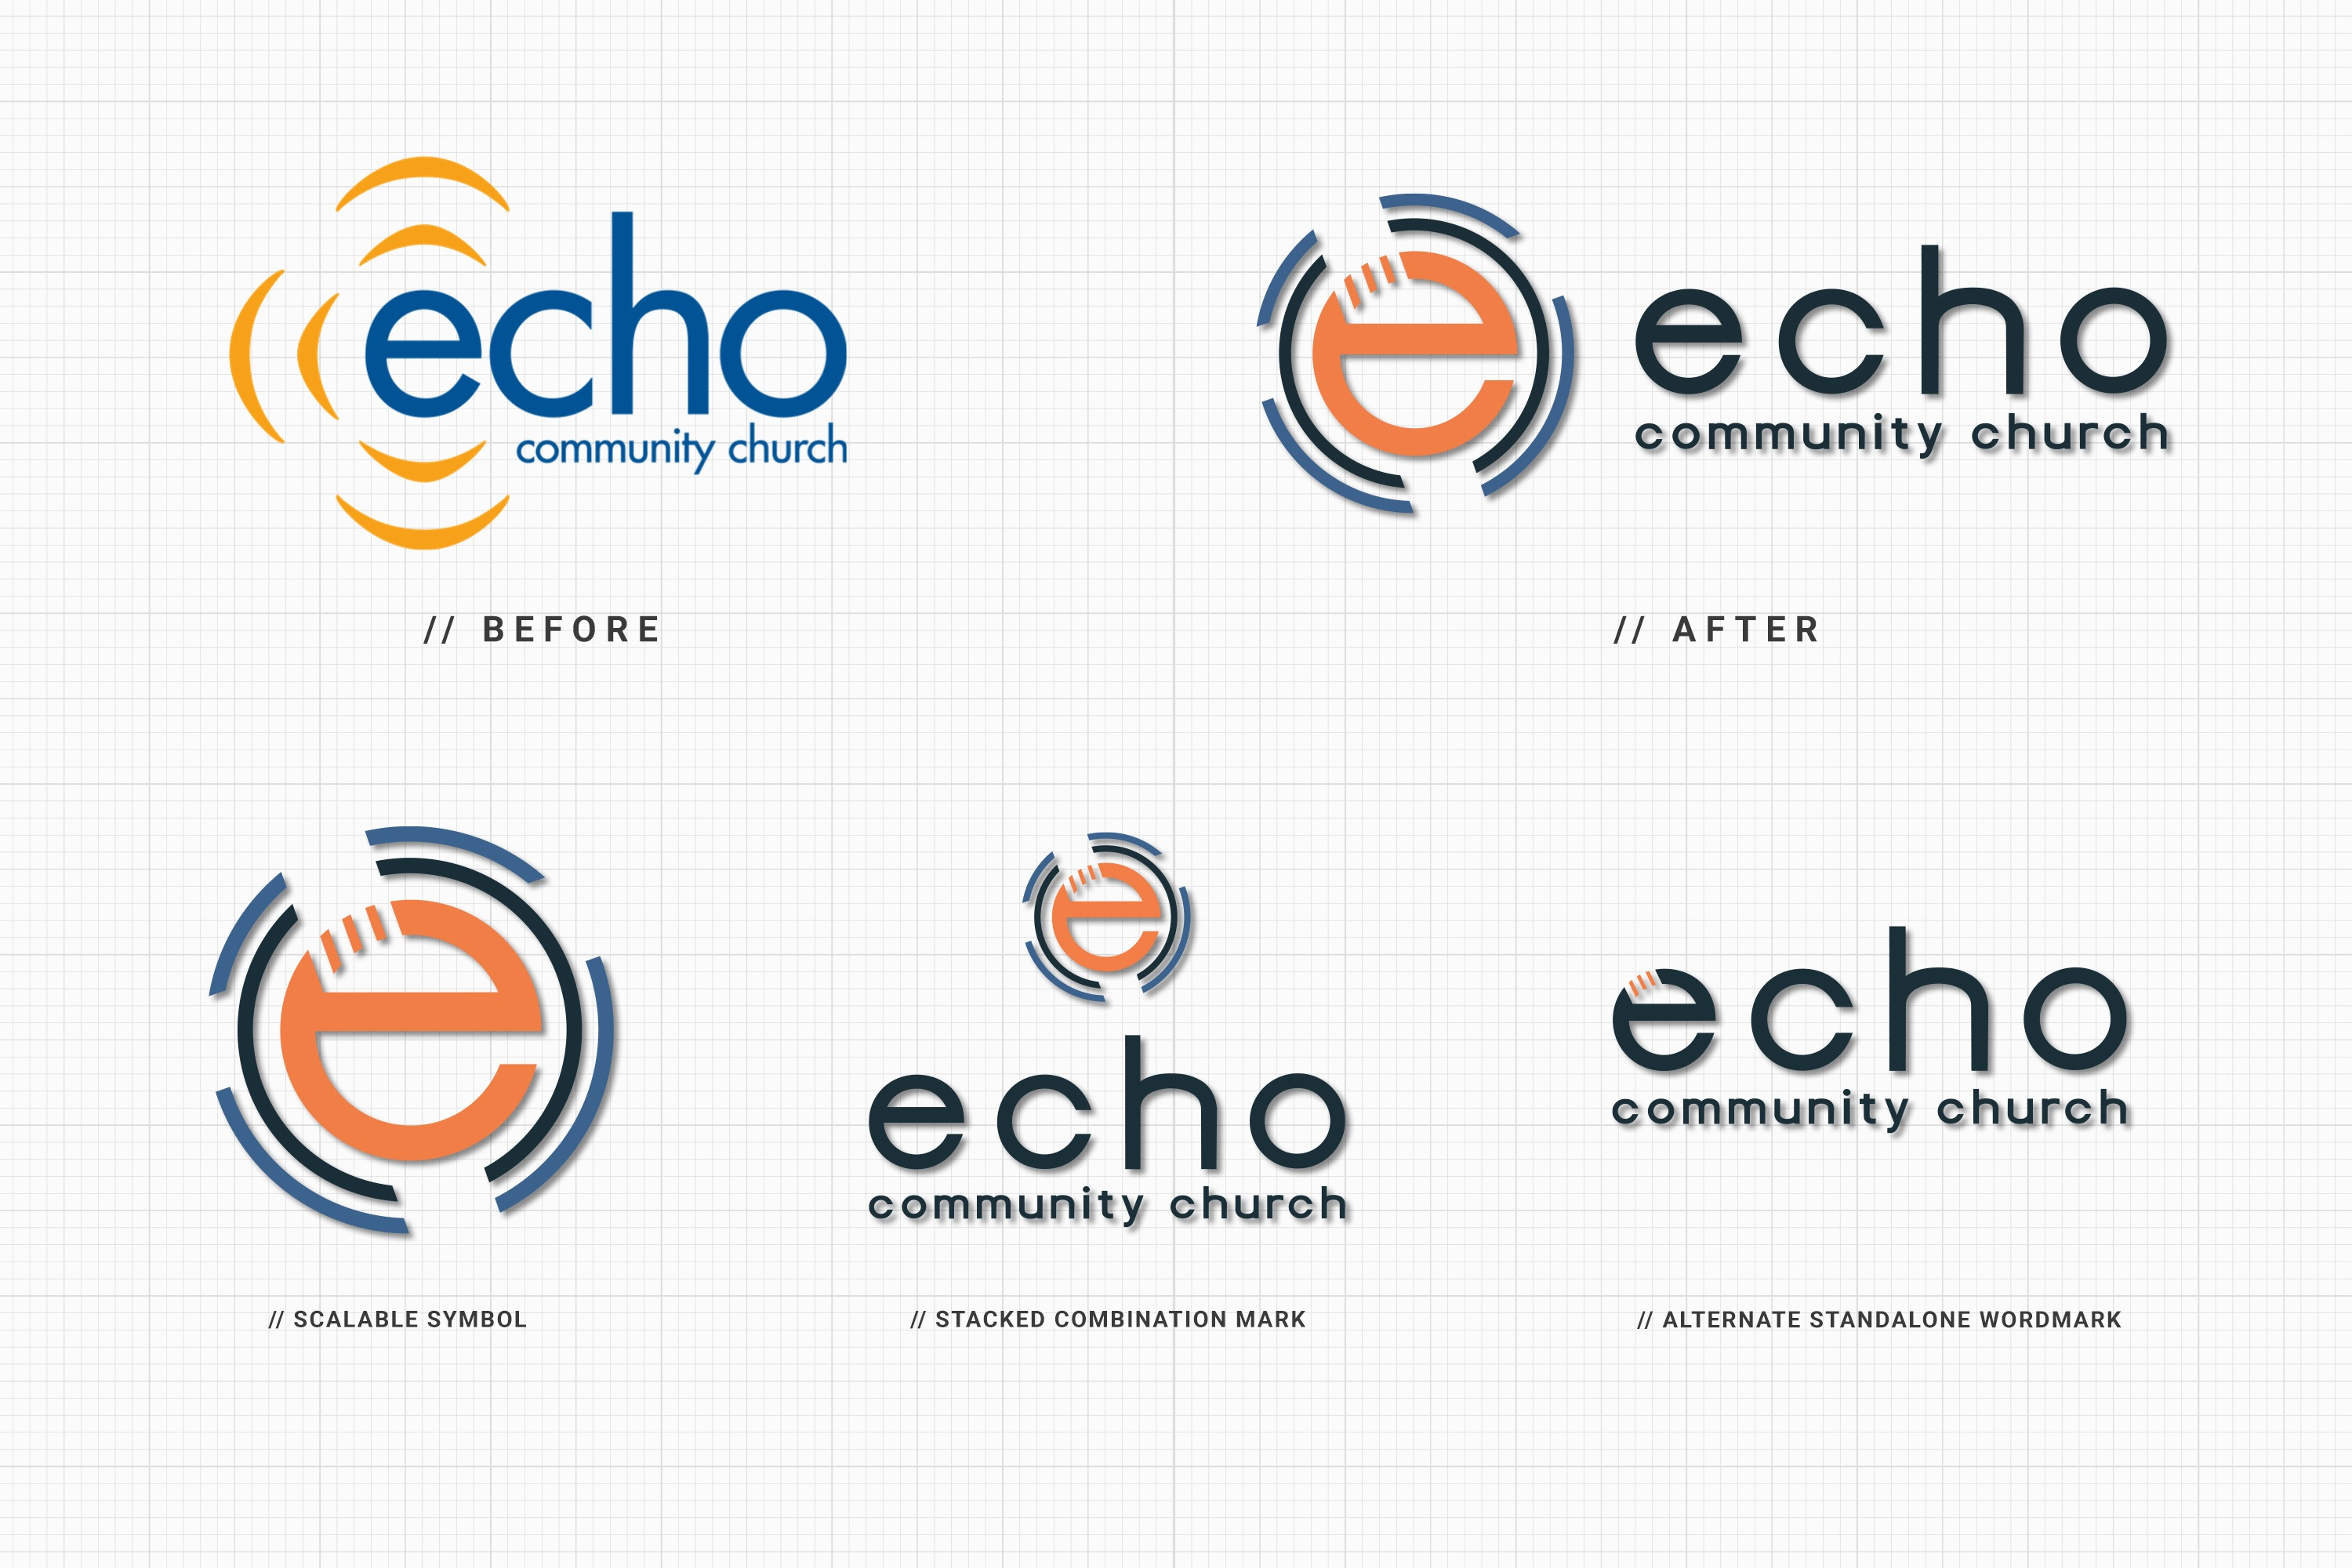 Best church branding guidelines and logo design and marketing materials by Abstract Union